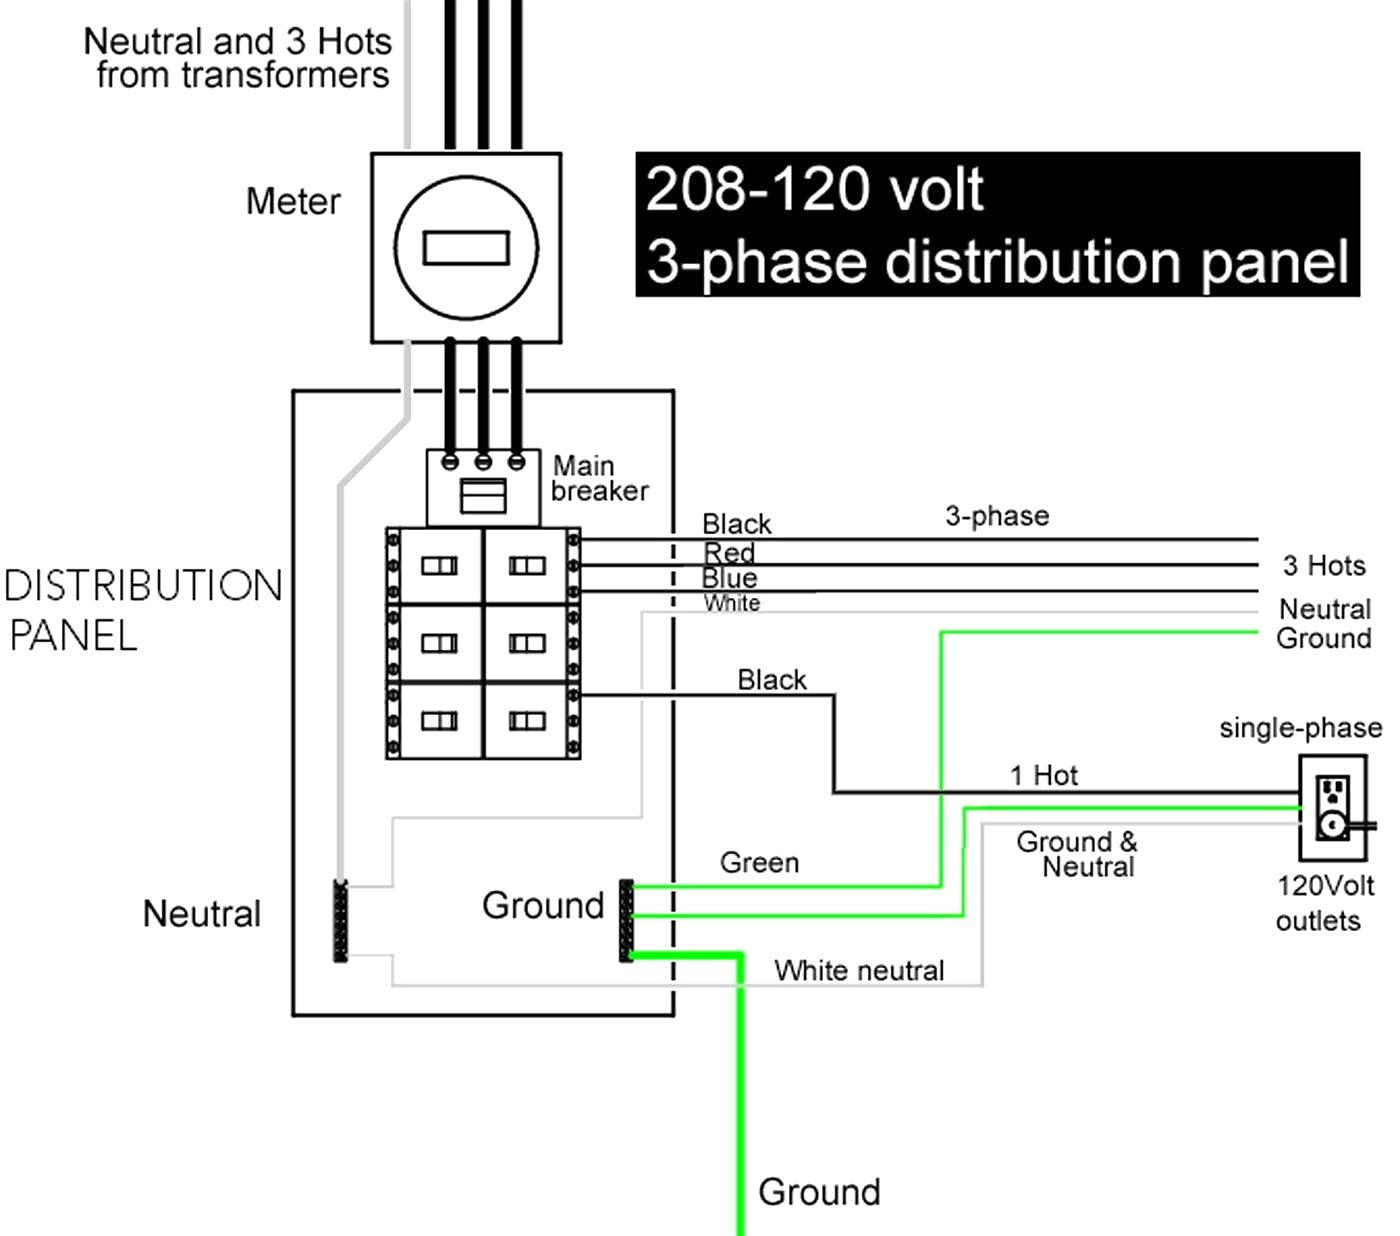 480V Transformer Wiring Diagram from wholefoodsonabudget.com